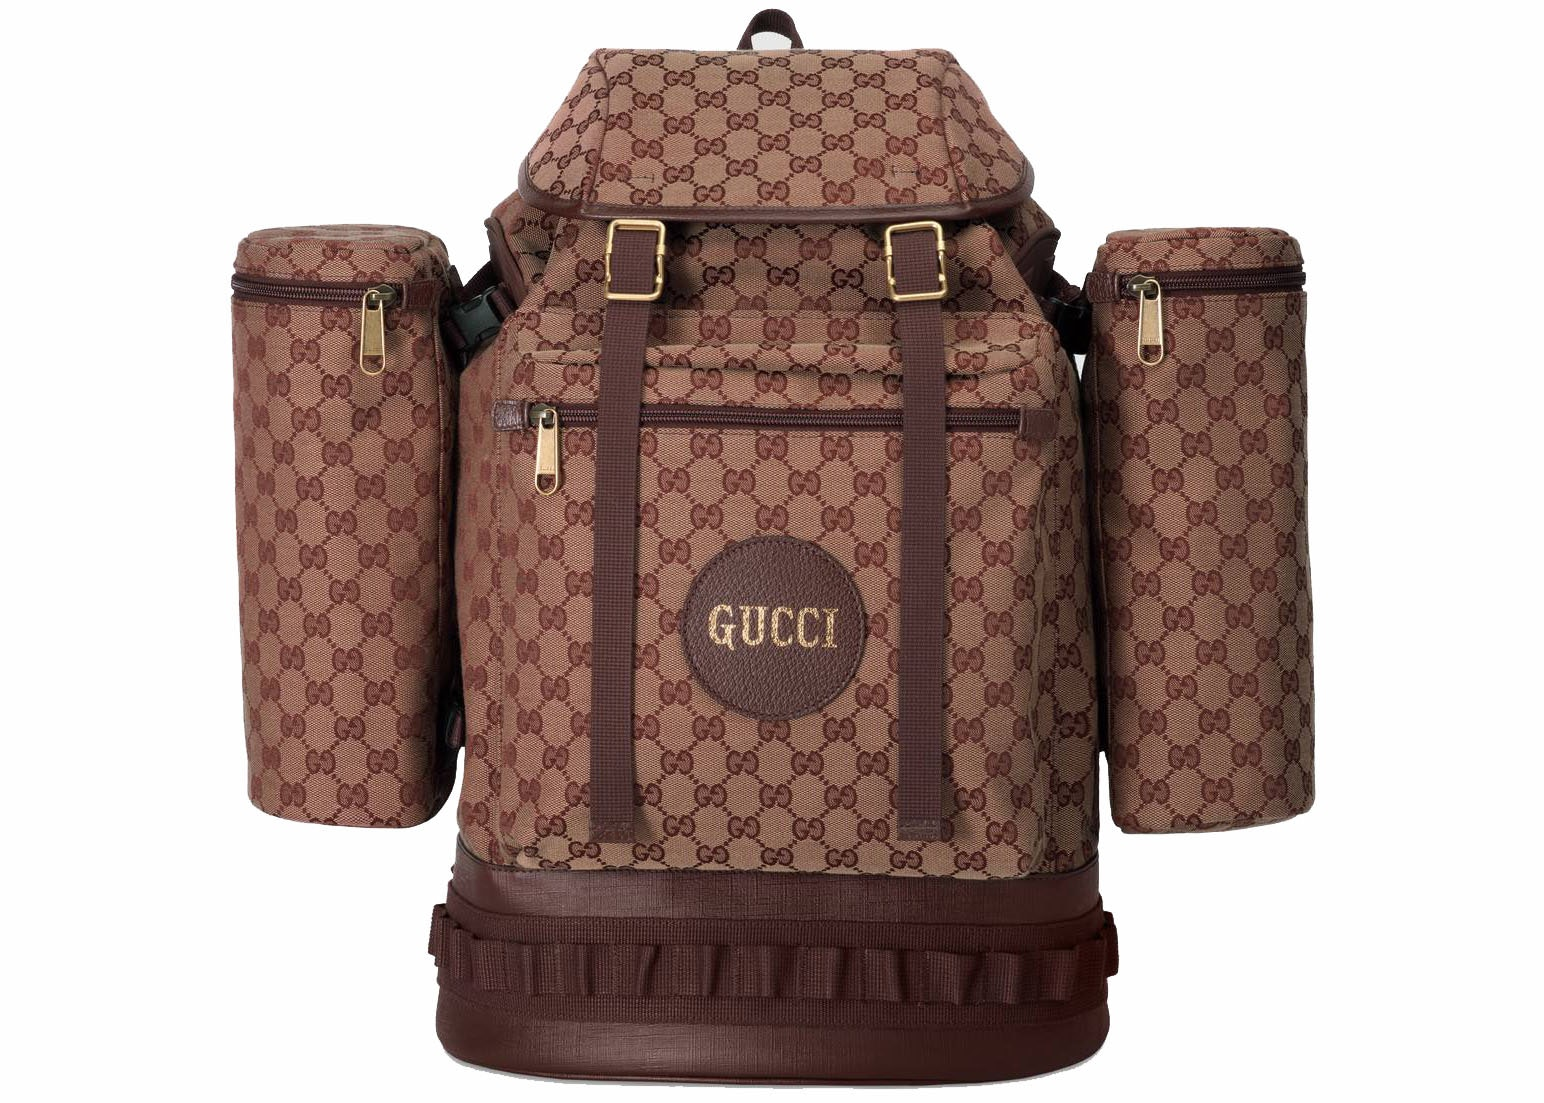 Gucci Backpack Canvas Large Beige/Bordeaux